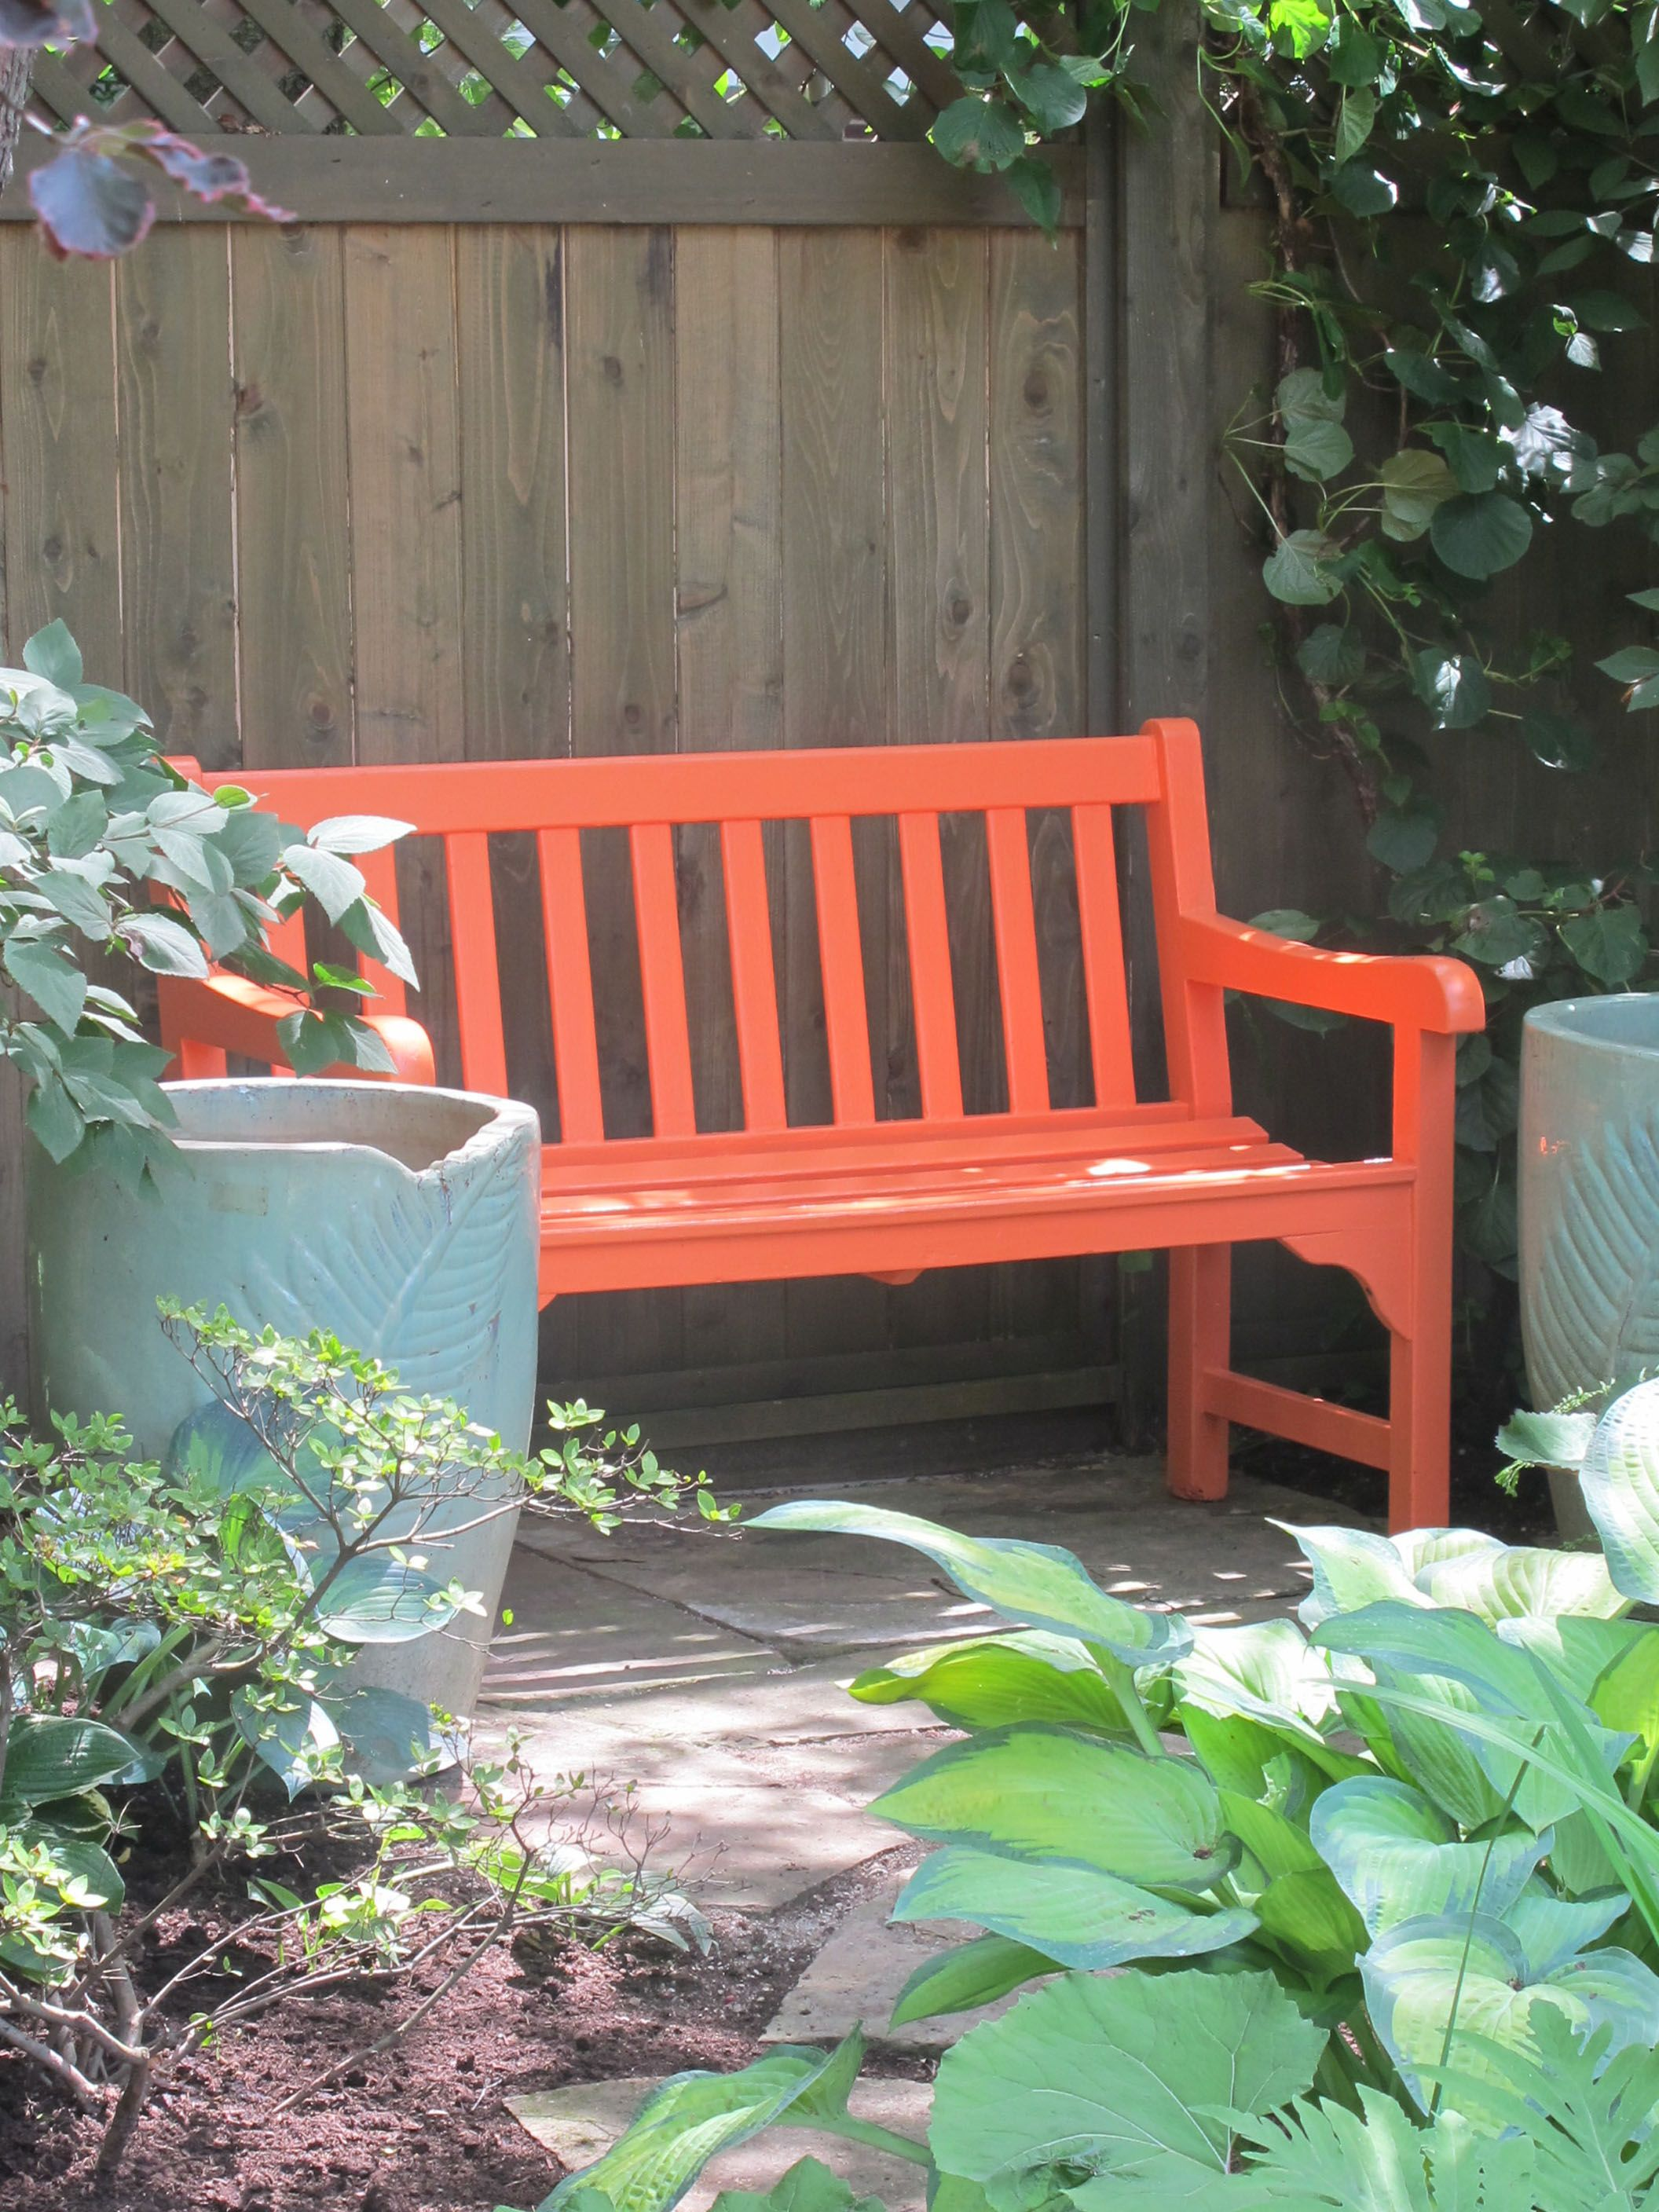 tangerine bench between blue pots gardens wooden. Black Bedroom Furniture Sets. Home Design Ideas